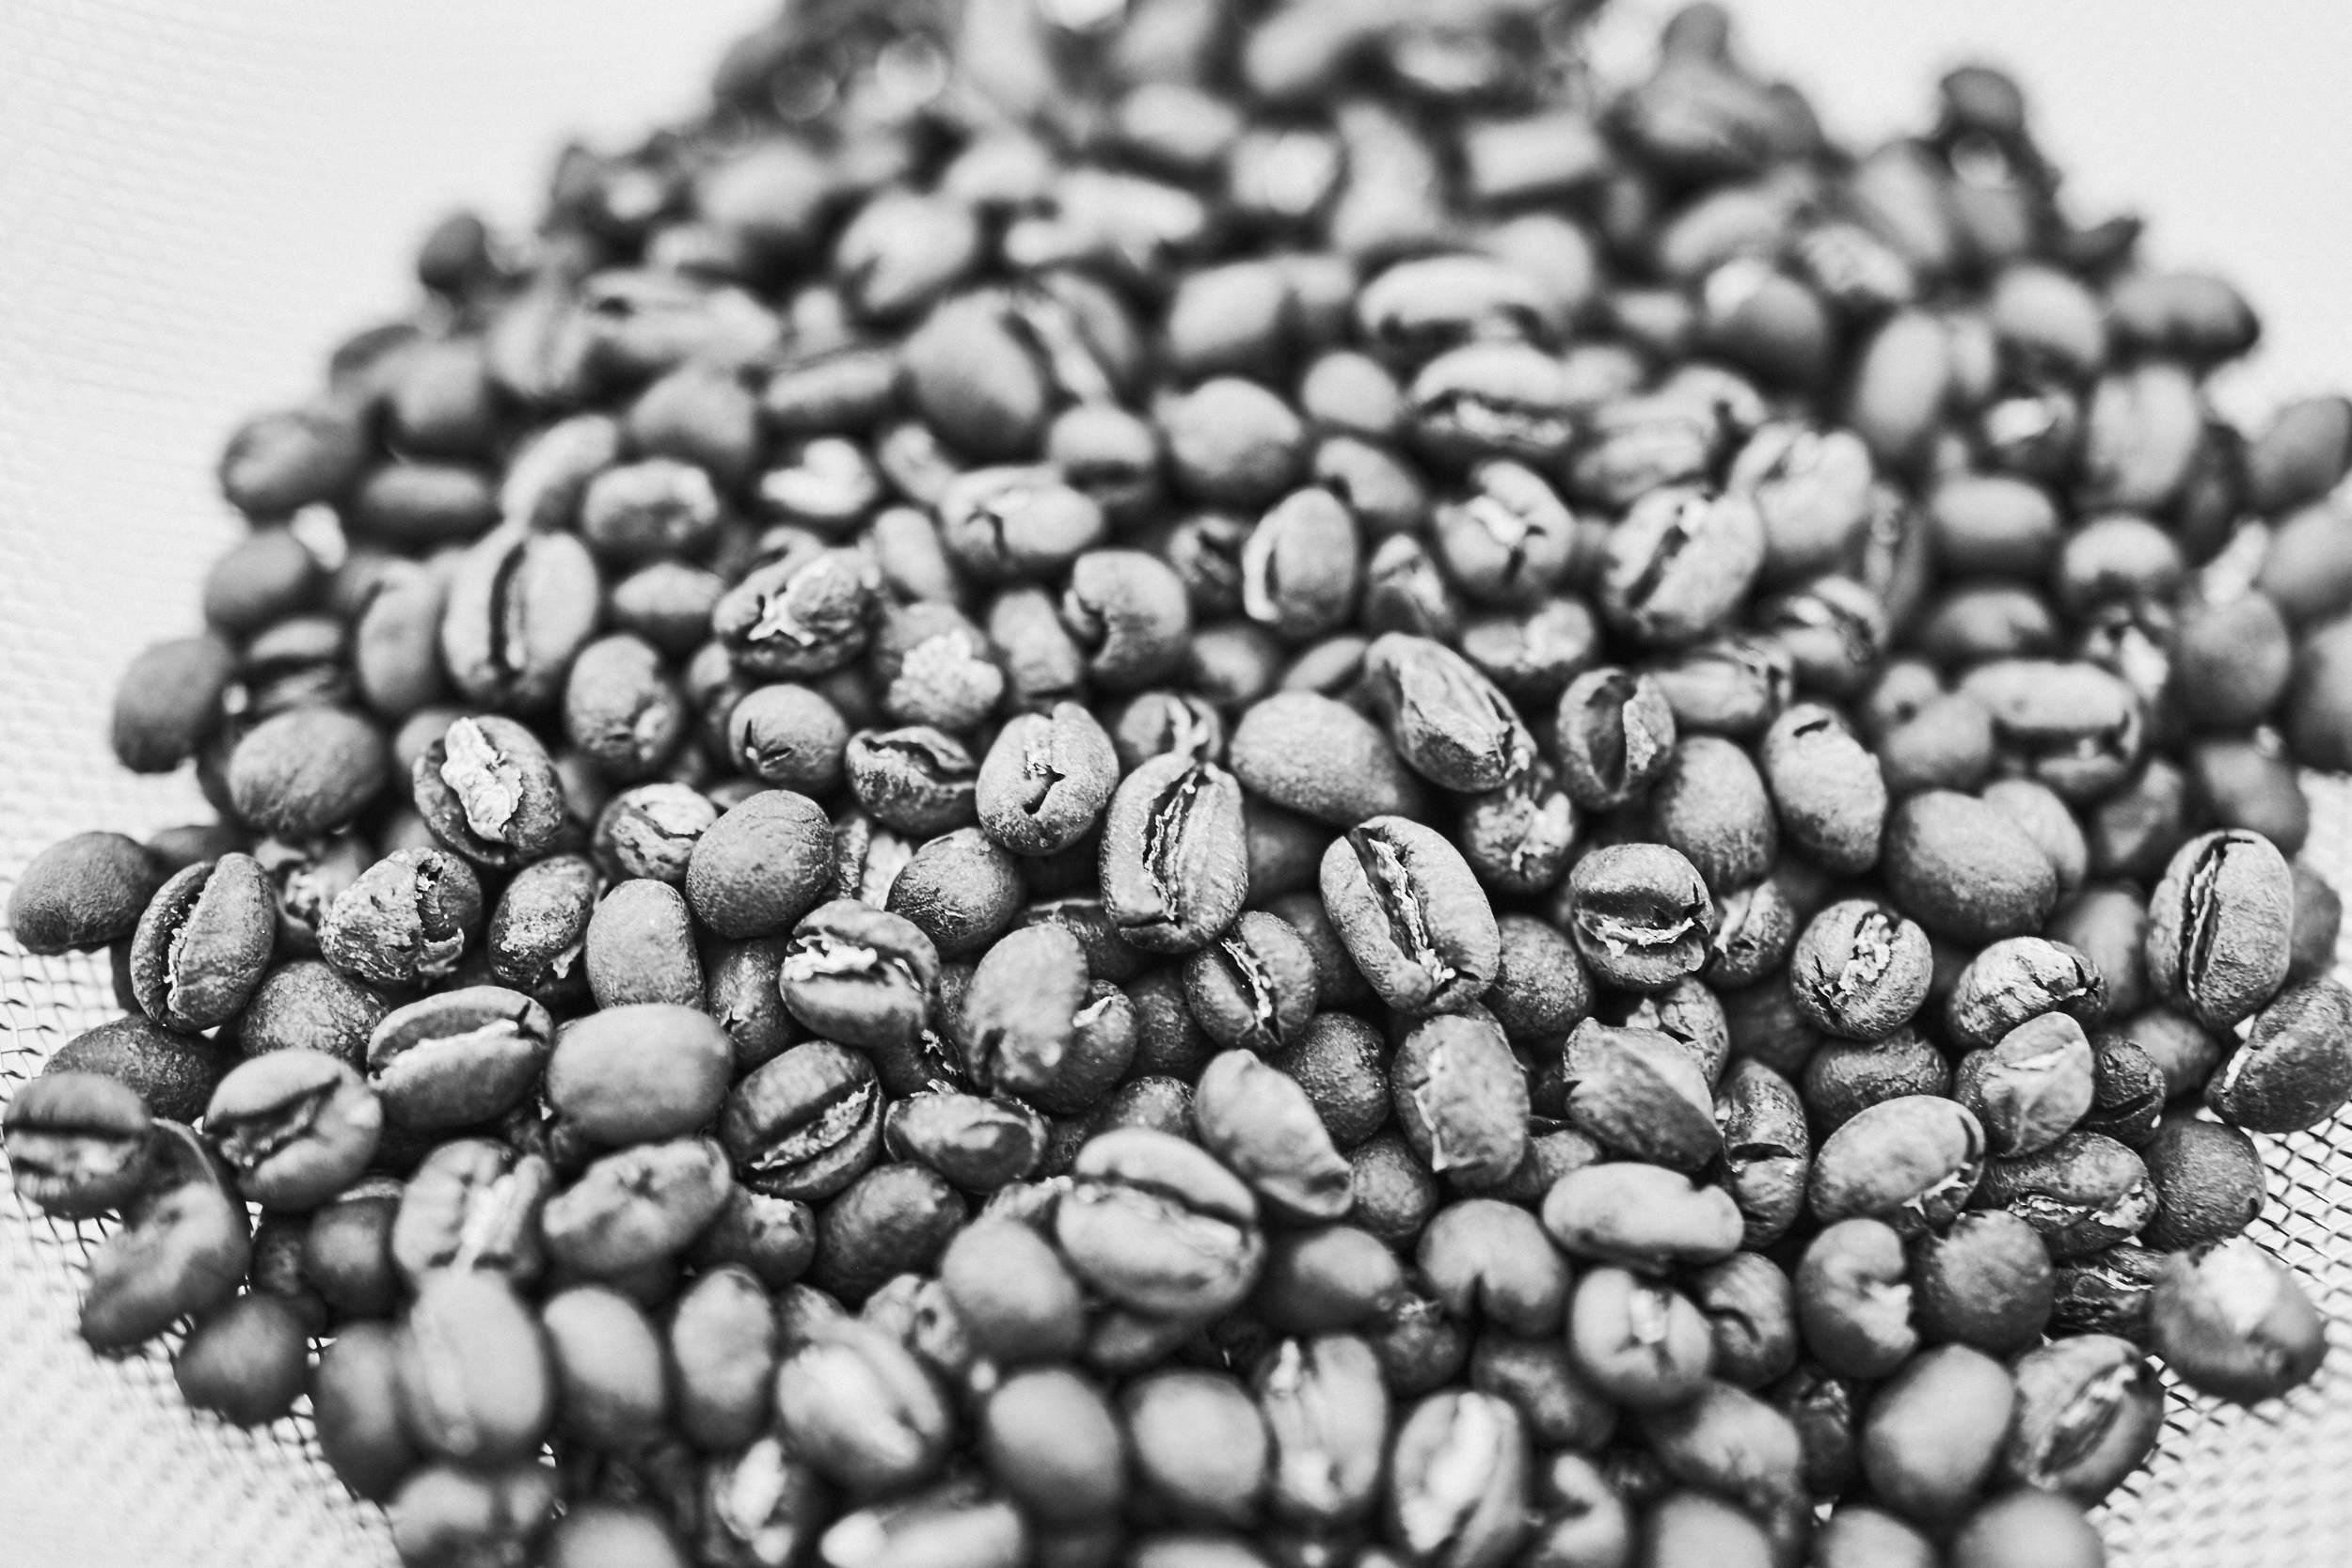 Roasted Coffee Beans (Image by Jeremy Allen)